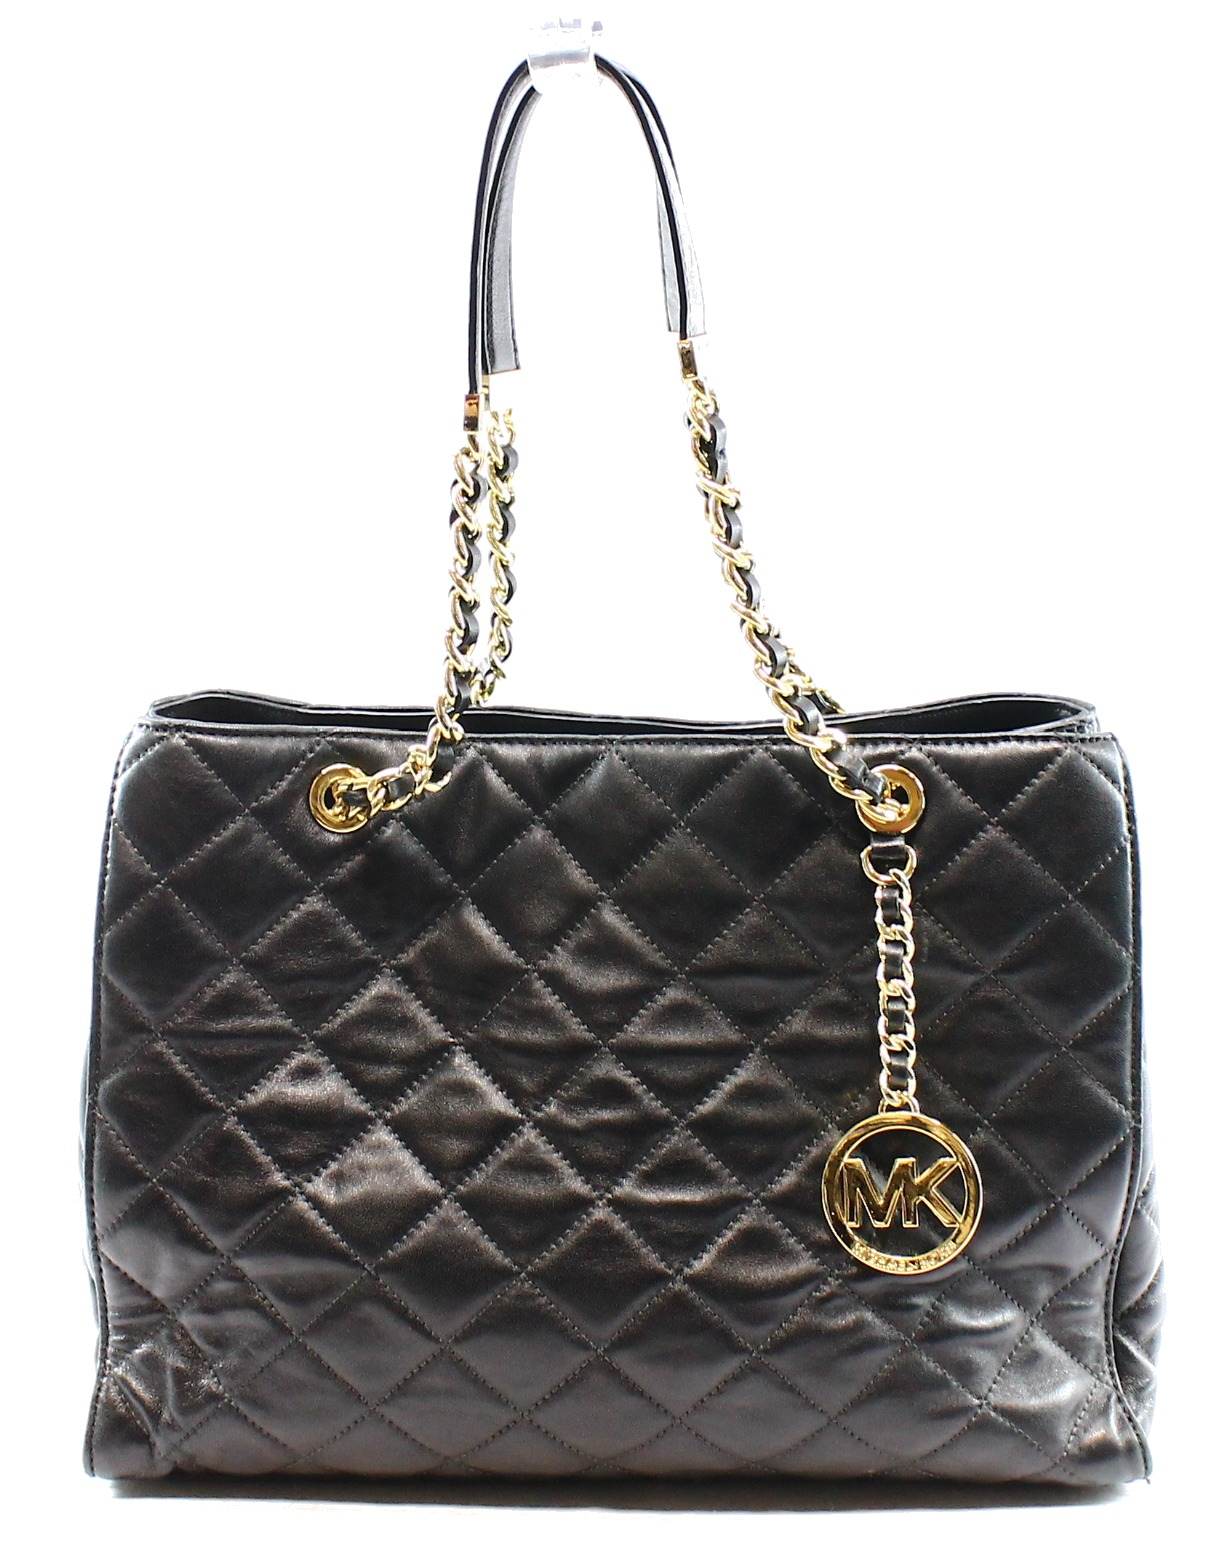 626f8028c568 Quilted Handbags Michael Kors   Stanford Center for Opportunity ...